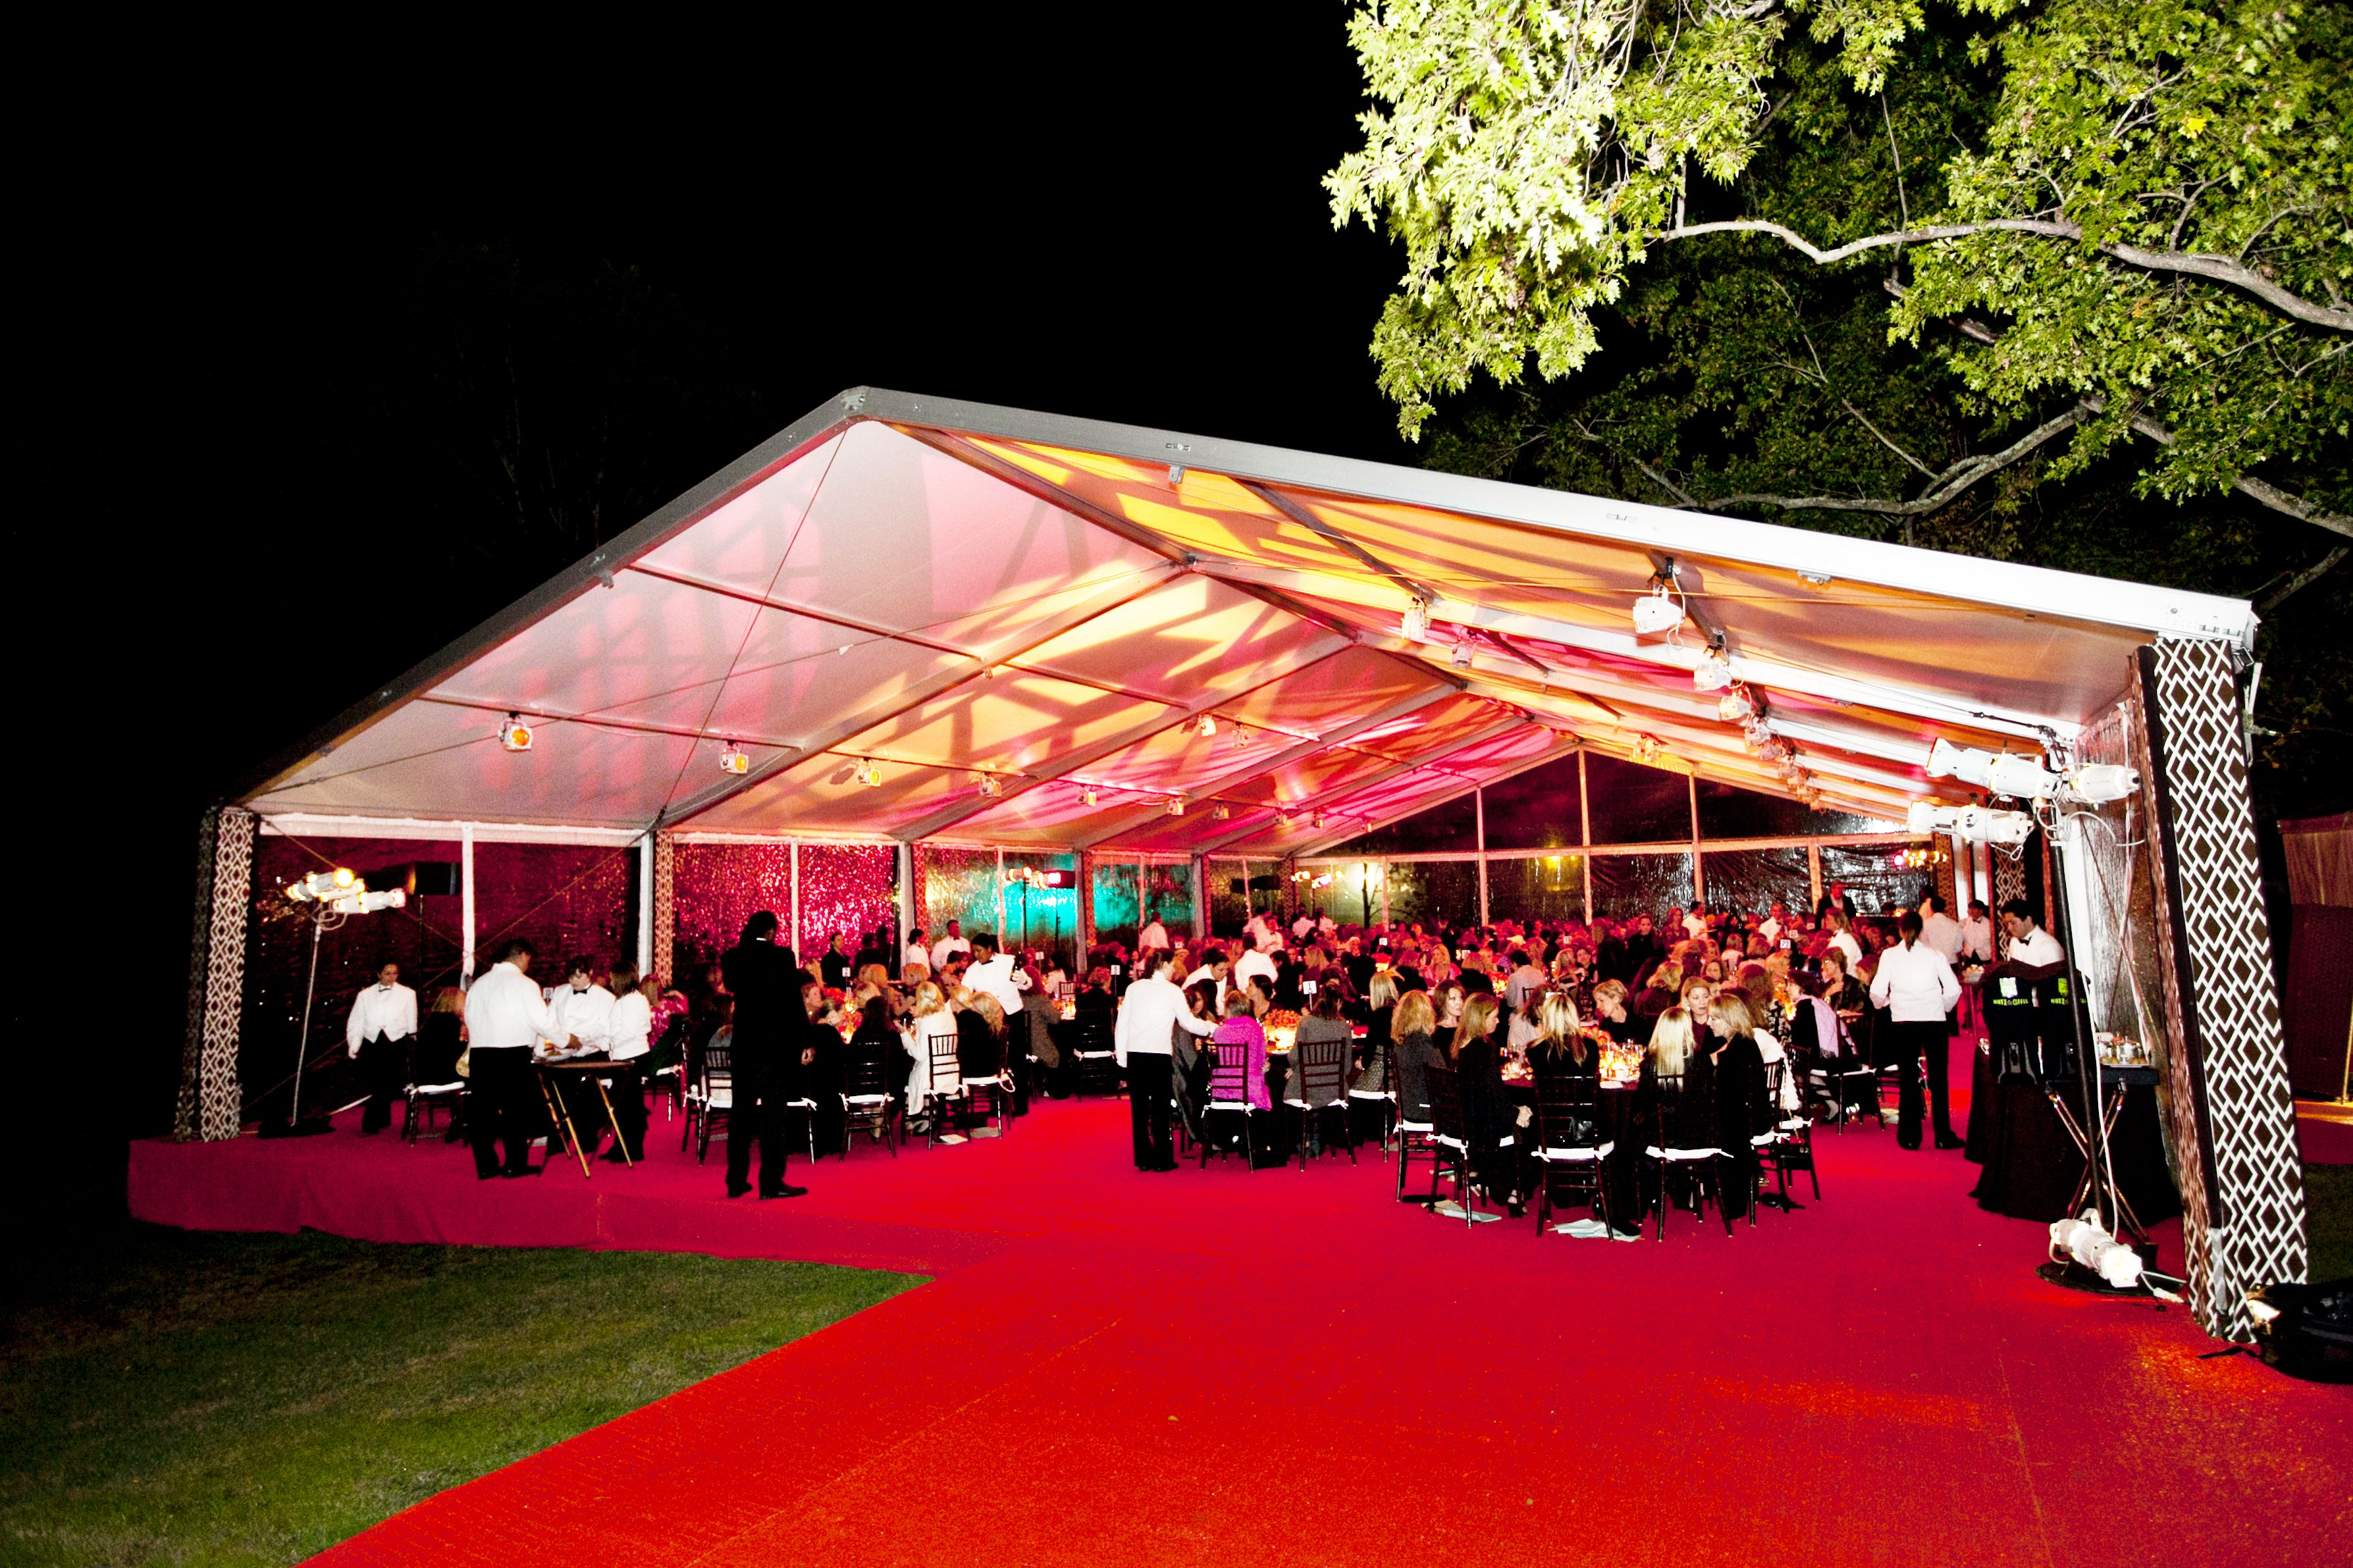 Tented Event White Tent Large Outdoor Party Large